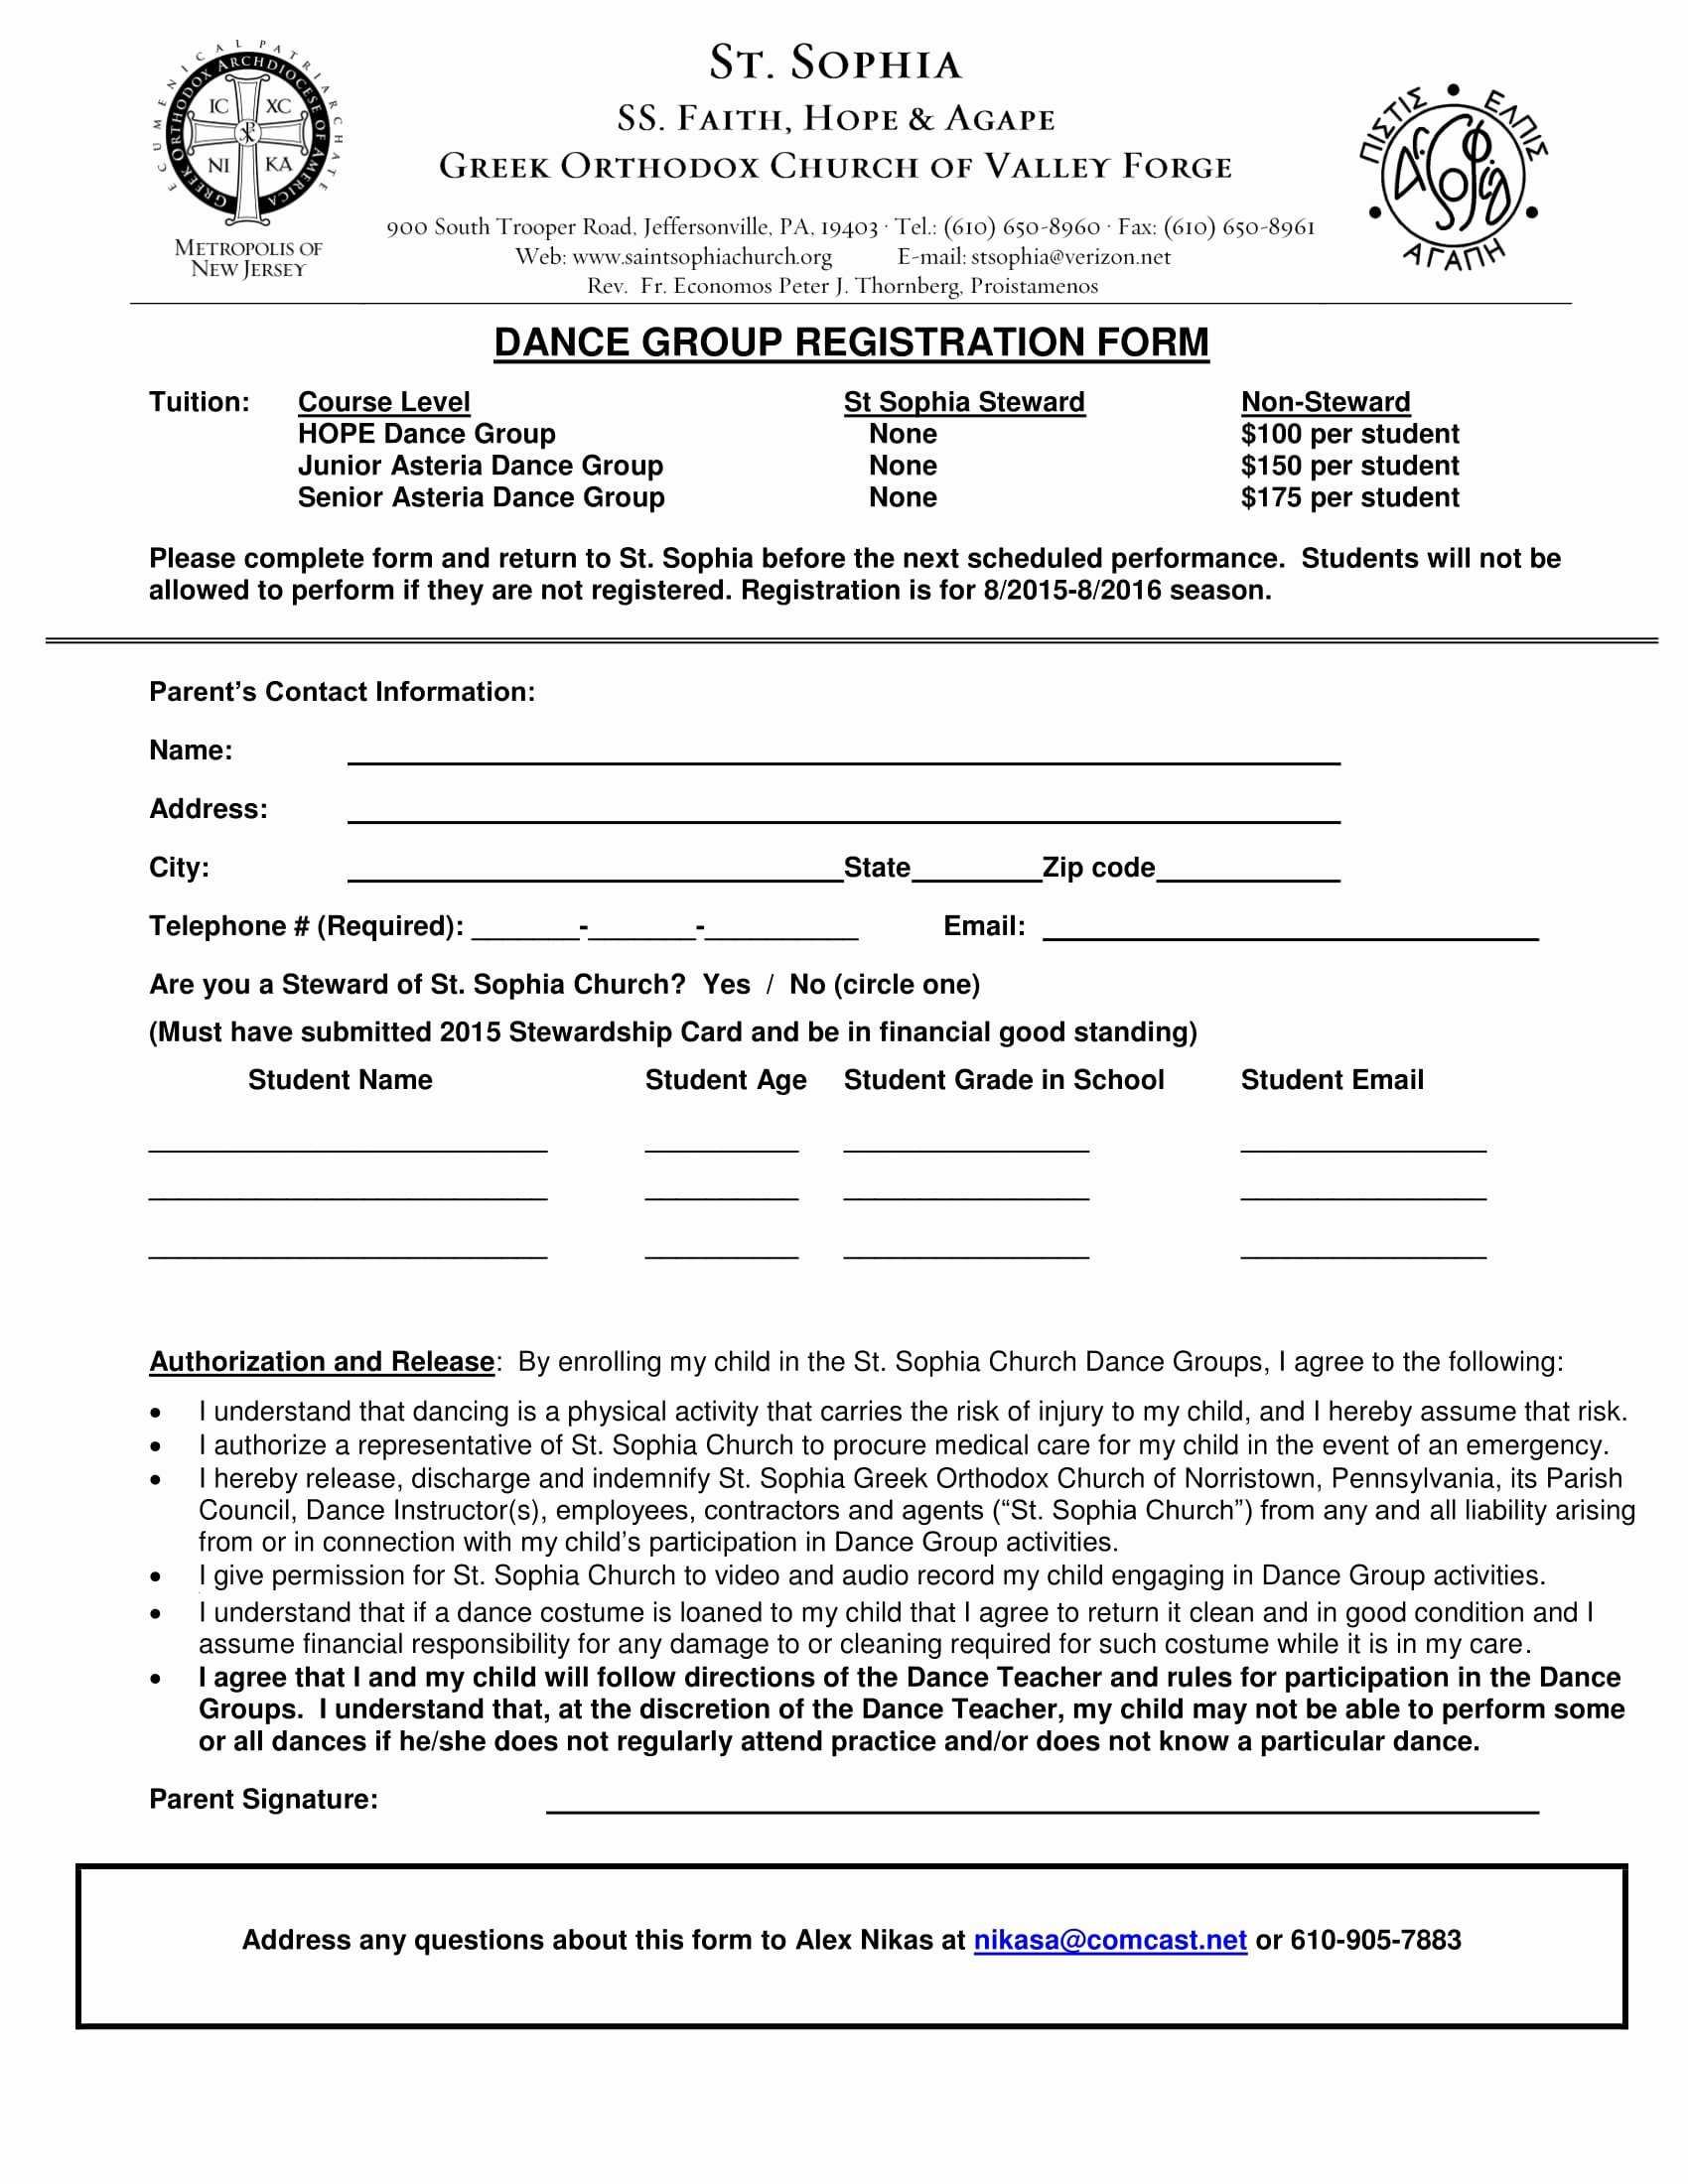 Class Registration form Template Lovely Free 10 Dance Registration form Samples